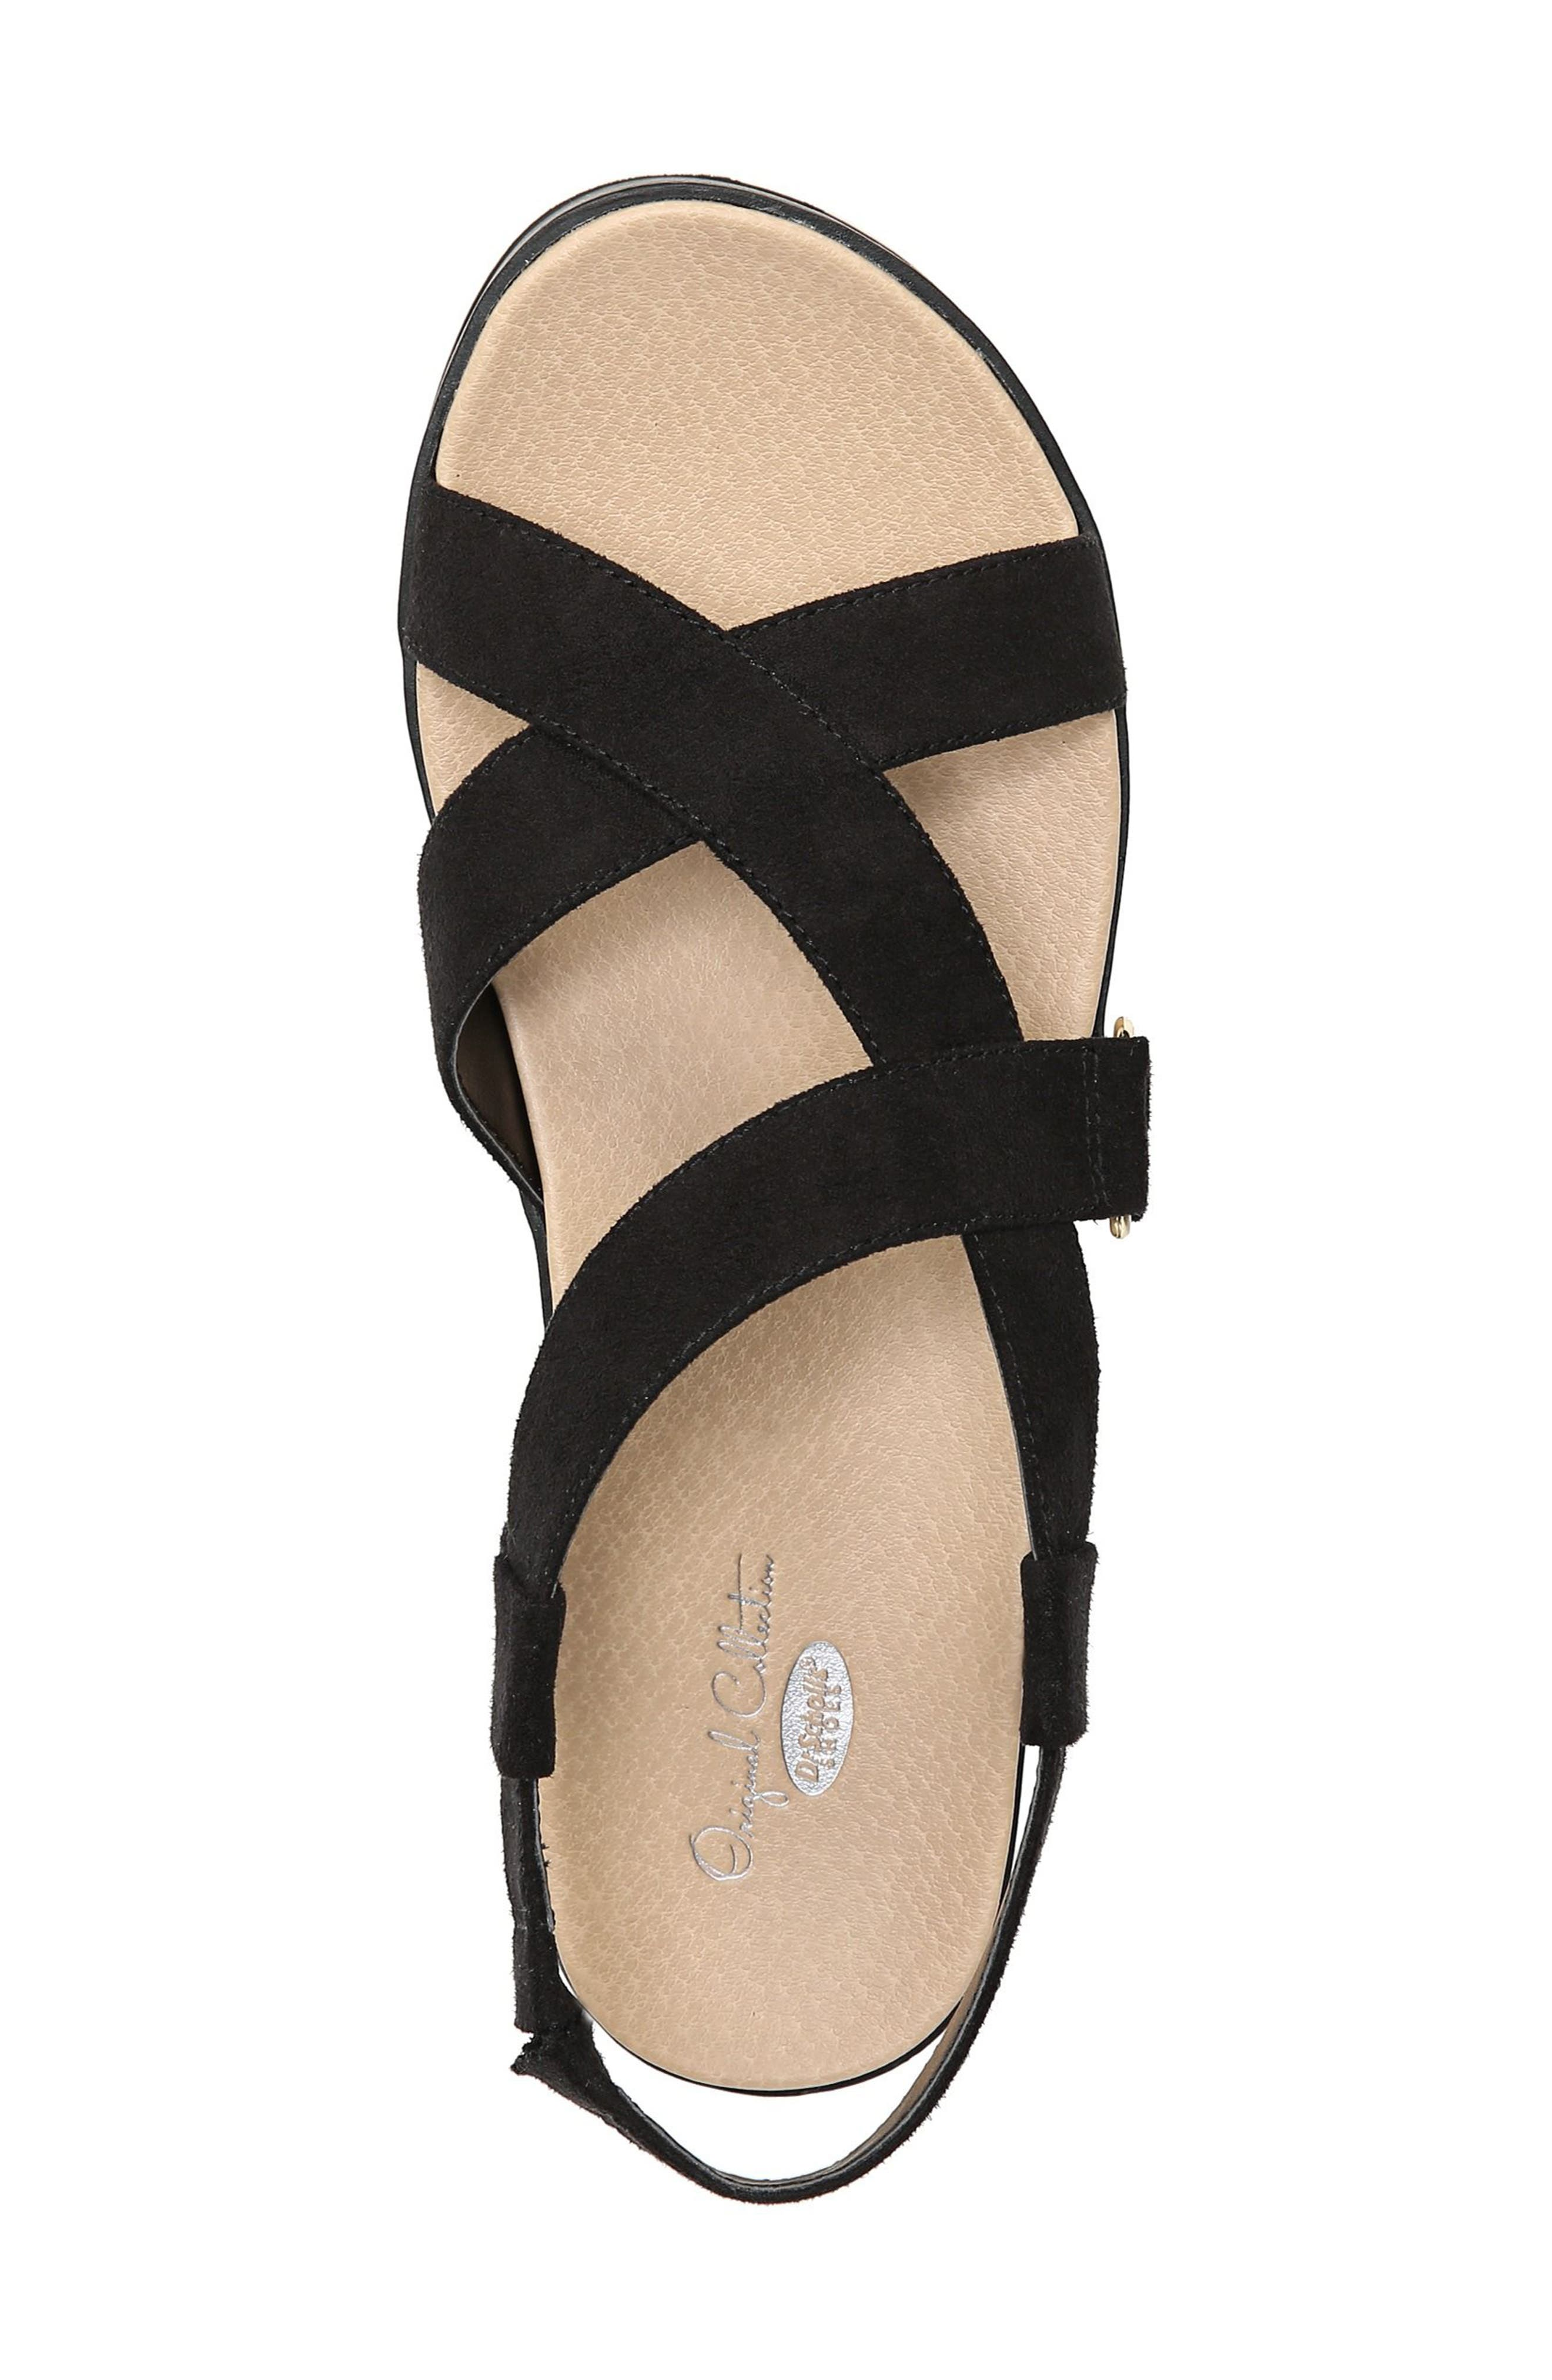 Companion Platform Sandal,                             Alternate thumbnail 5, color,                             BLACK FABRIC